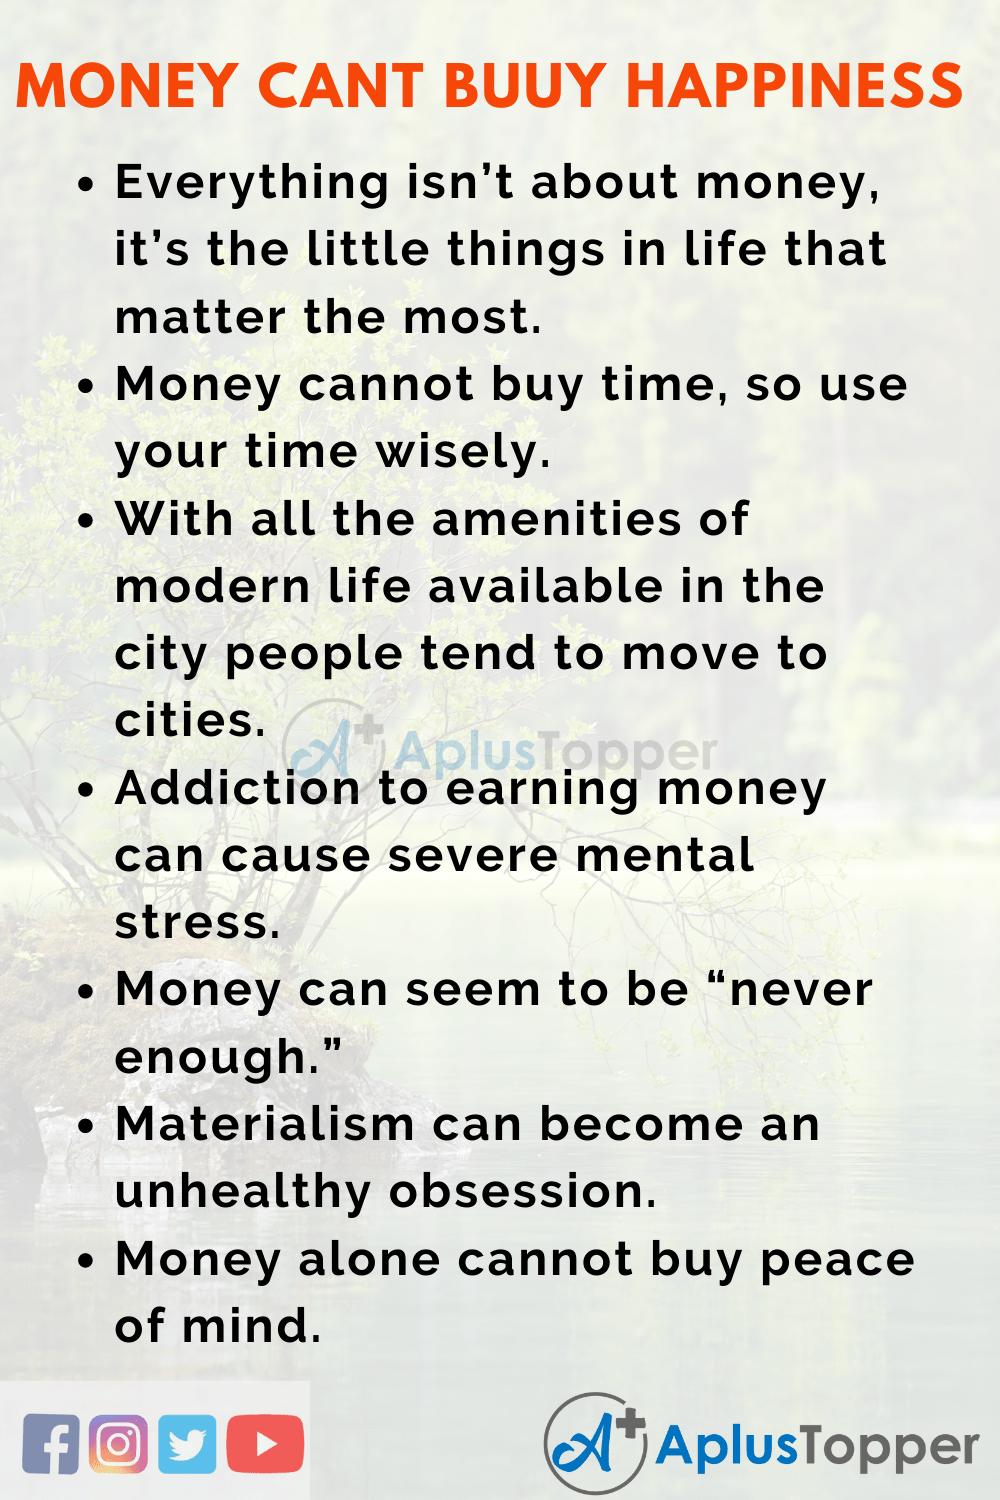 Short Essay on Money Can't Buy Happiness 150 Words in English